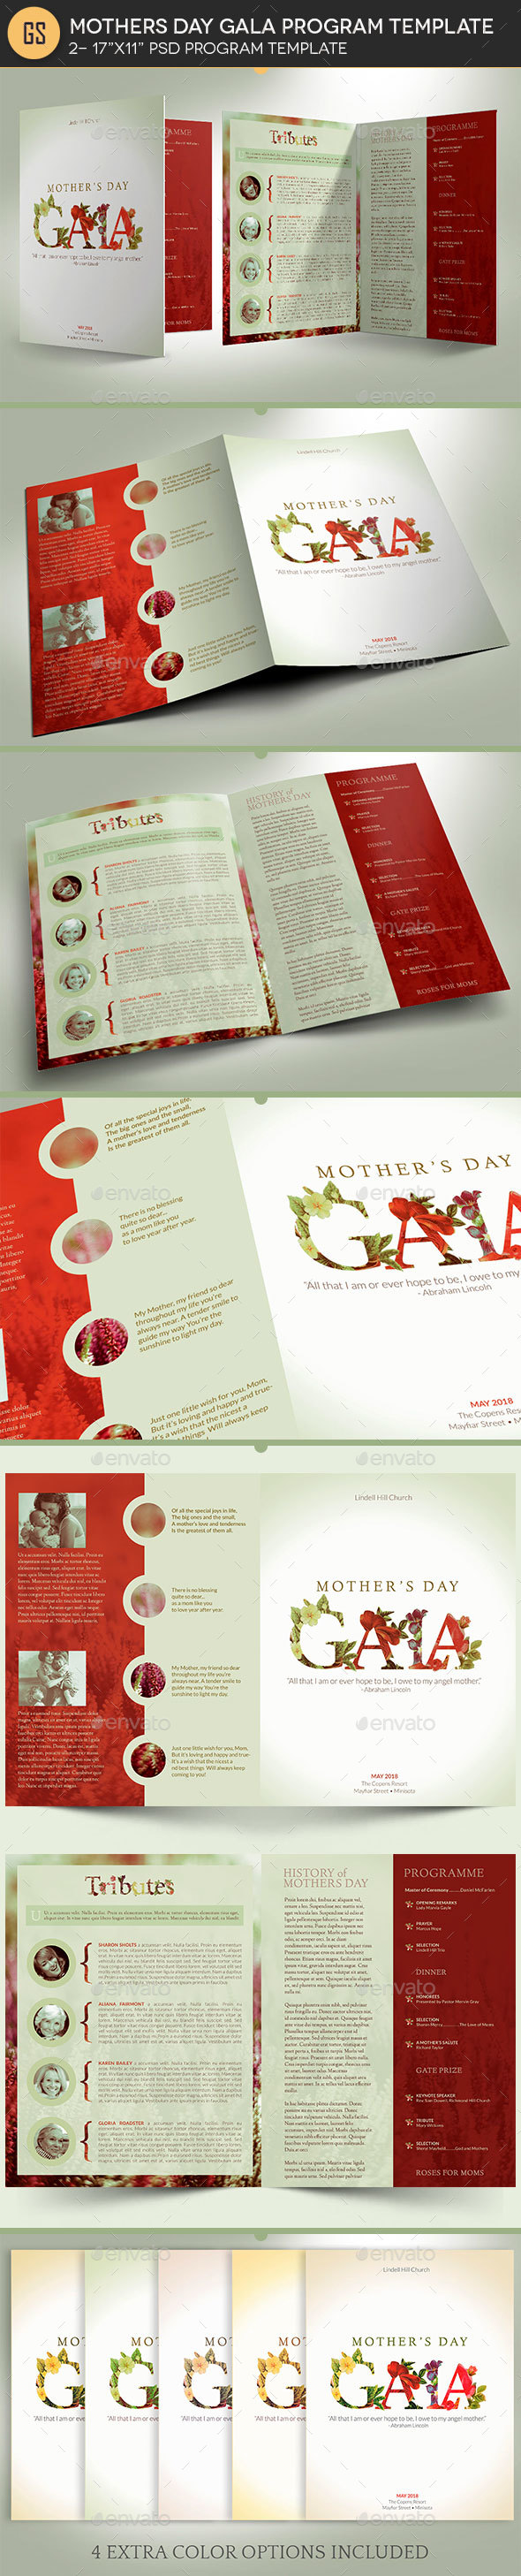 GraphicRiver Mothers Gala Program Template 21179160